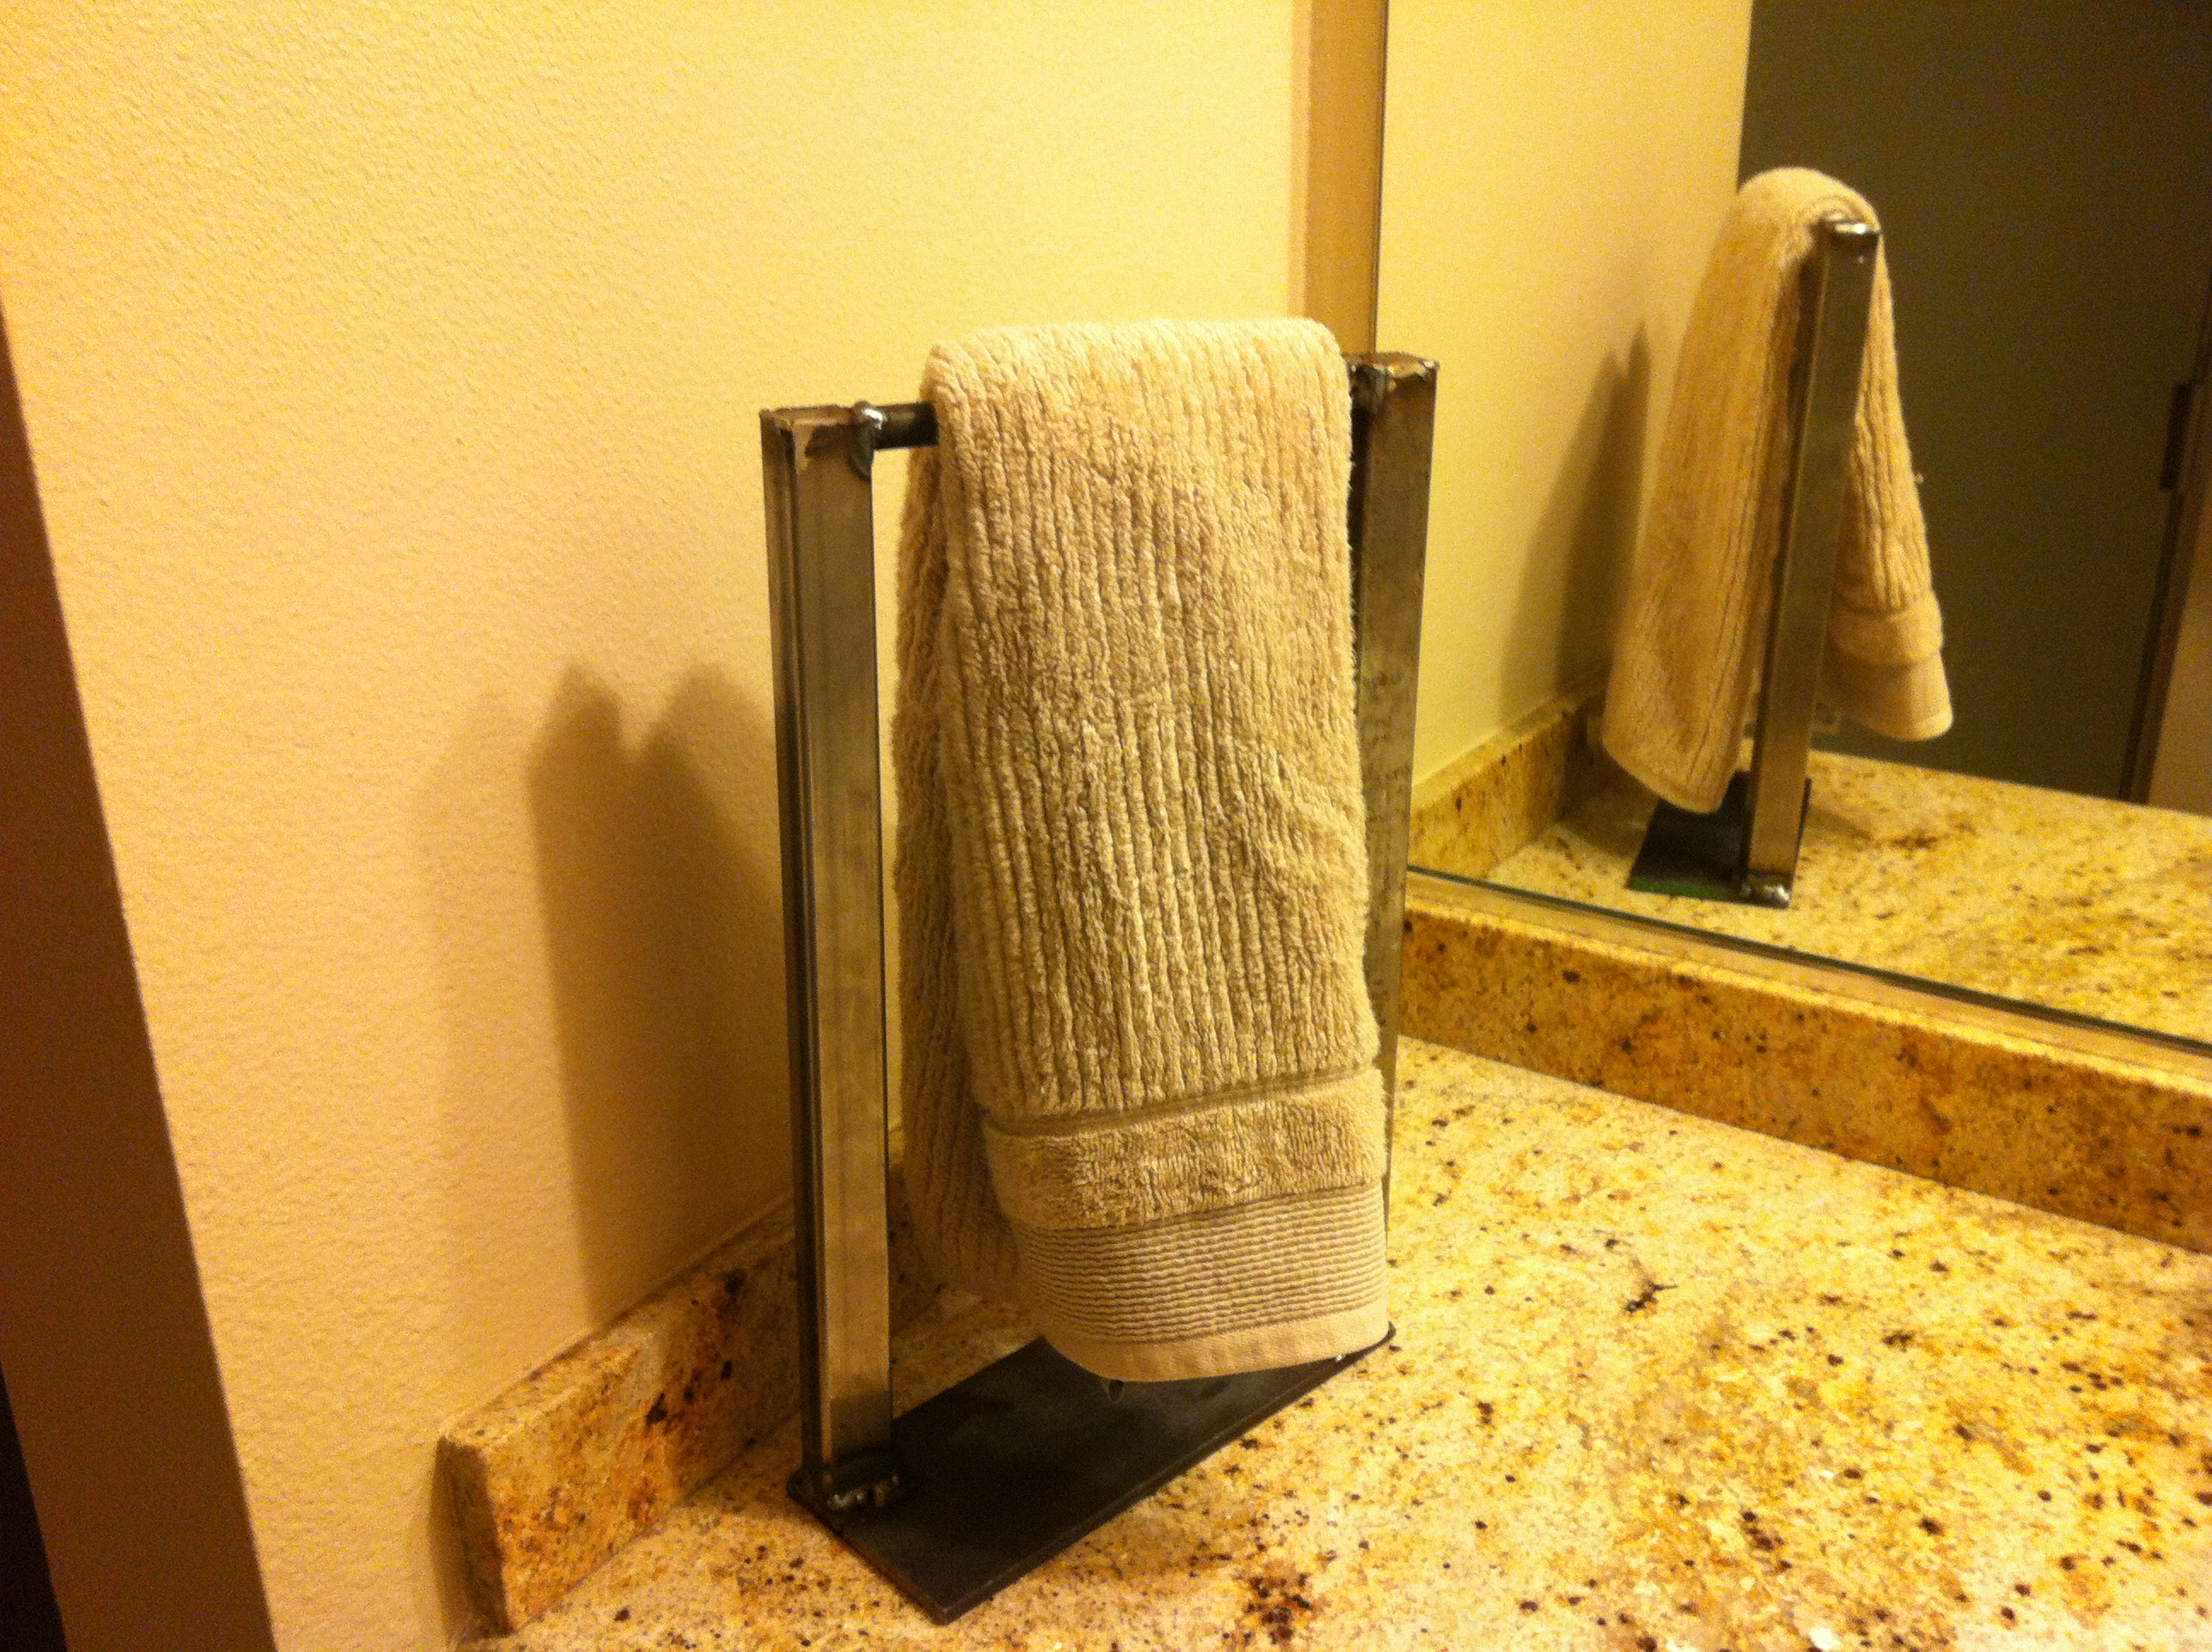 Hand Towel Rack - I made it at TechShop